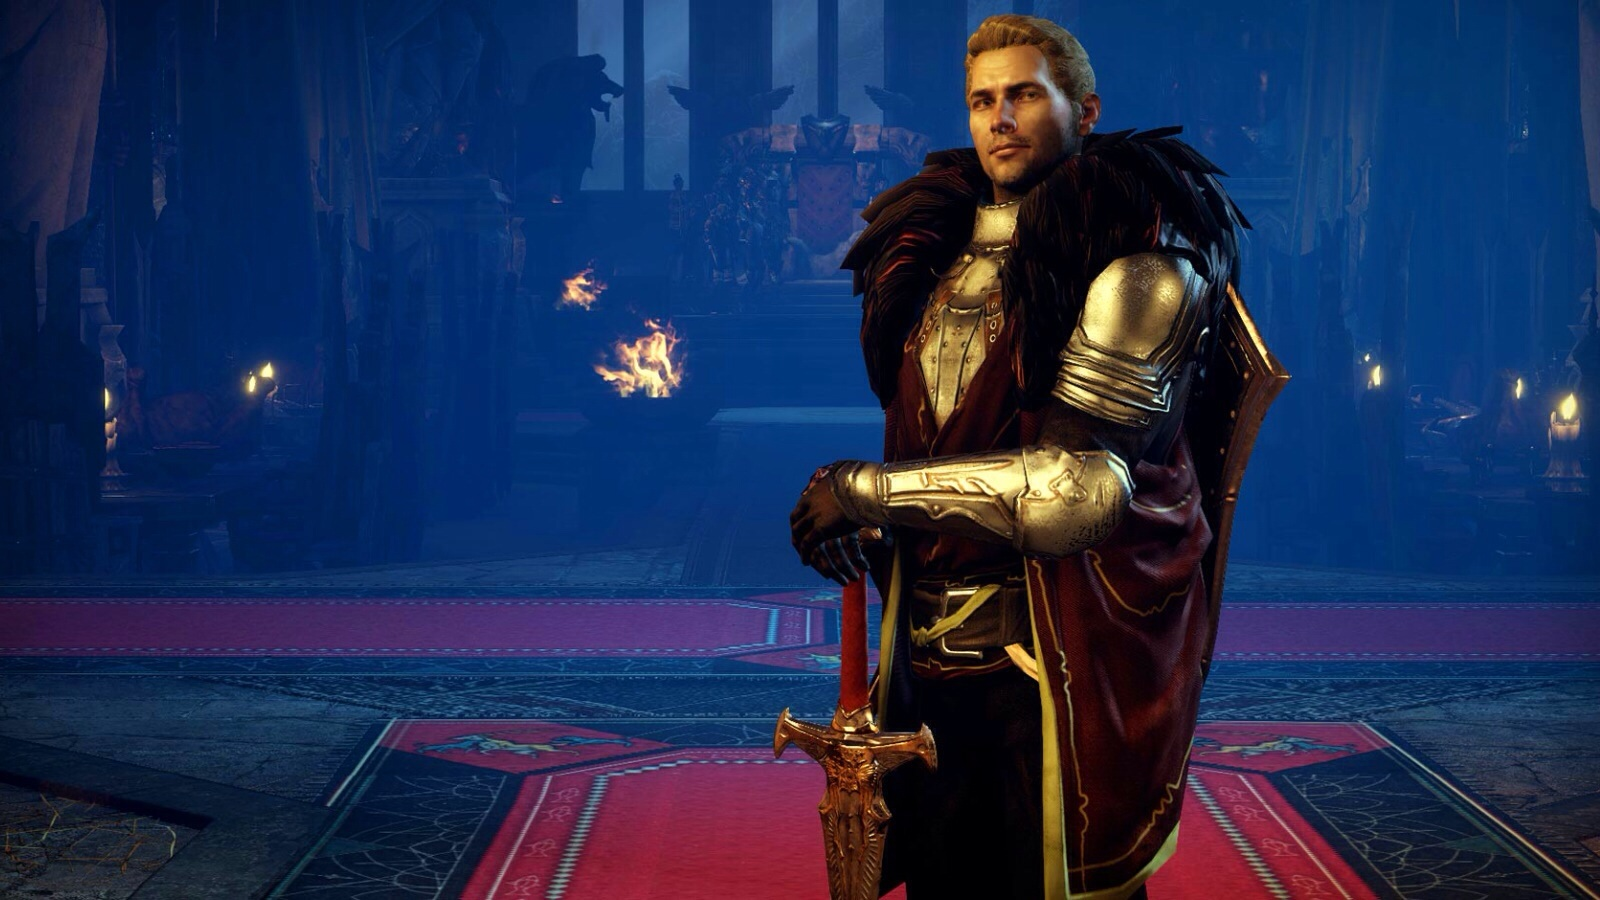 Dragon Age Inquisition Cullen Rutherford Wallpaper 38728625